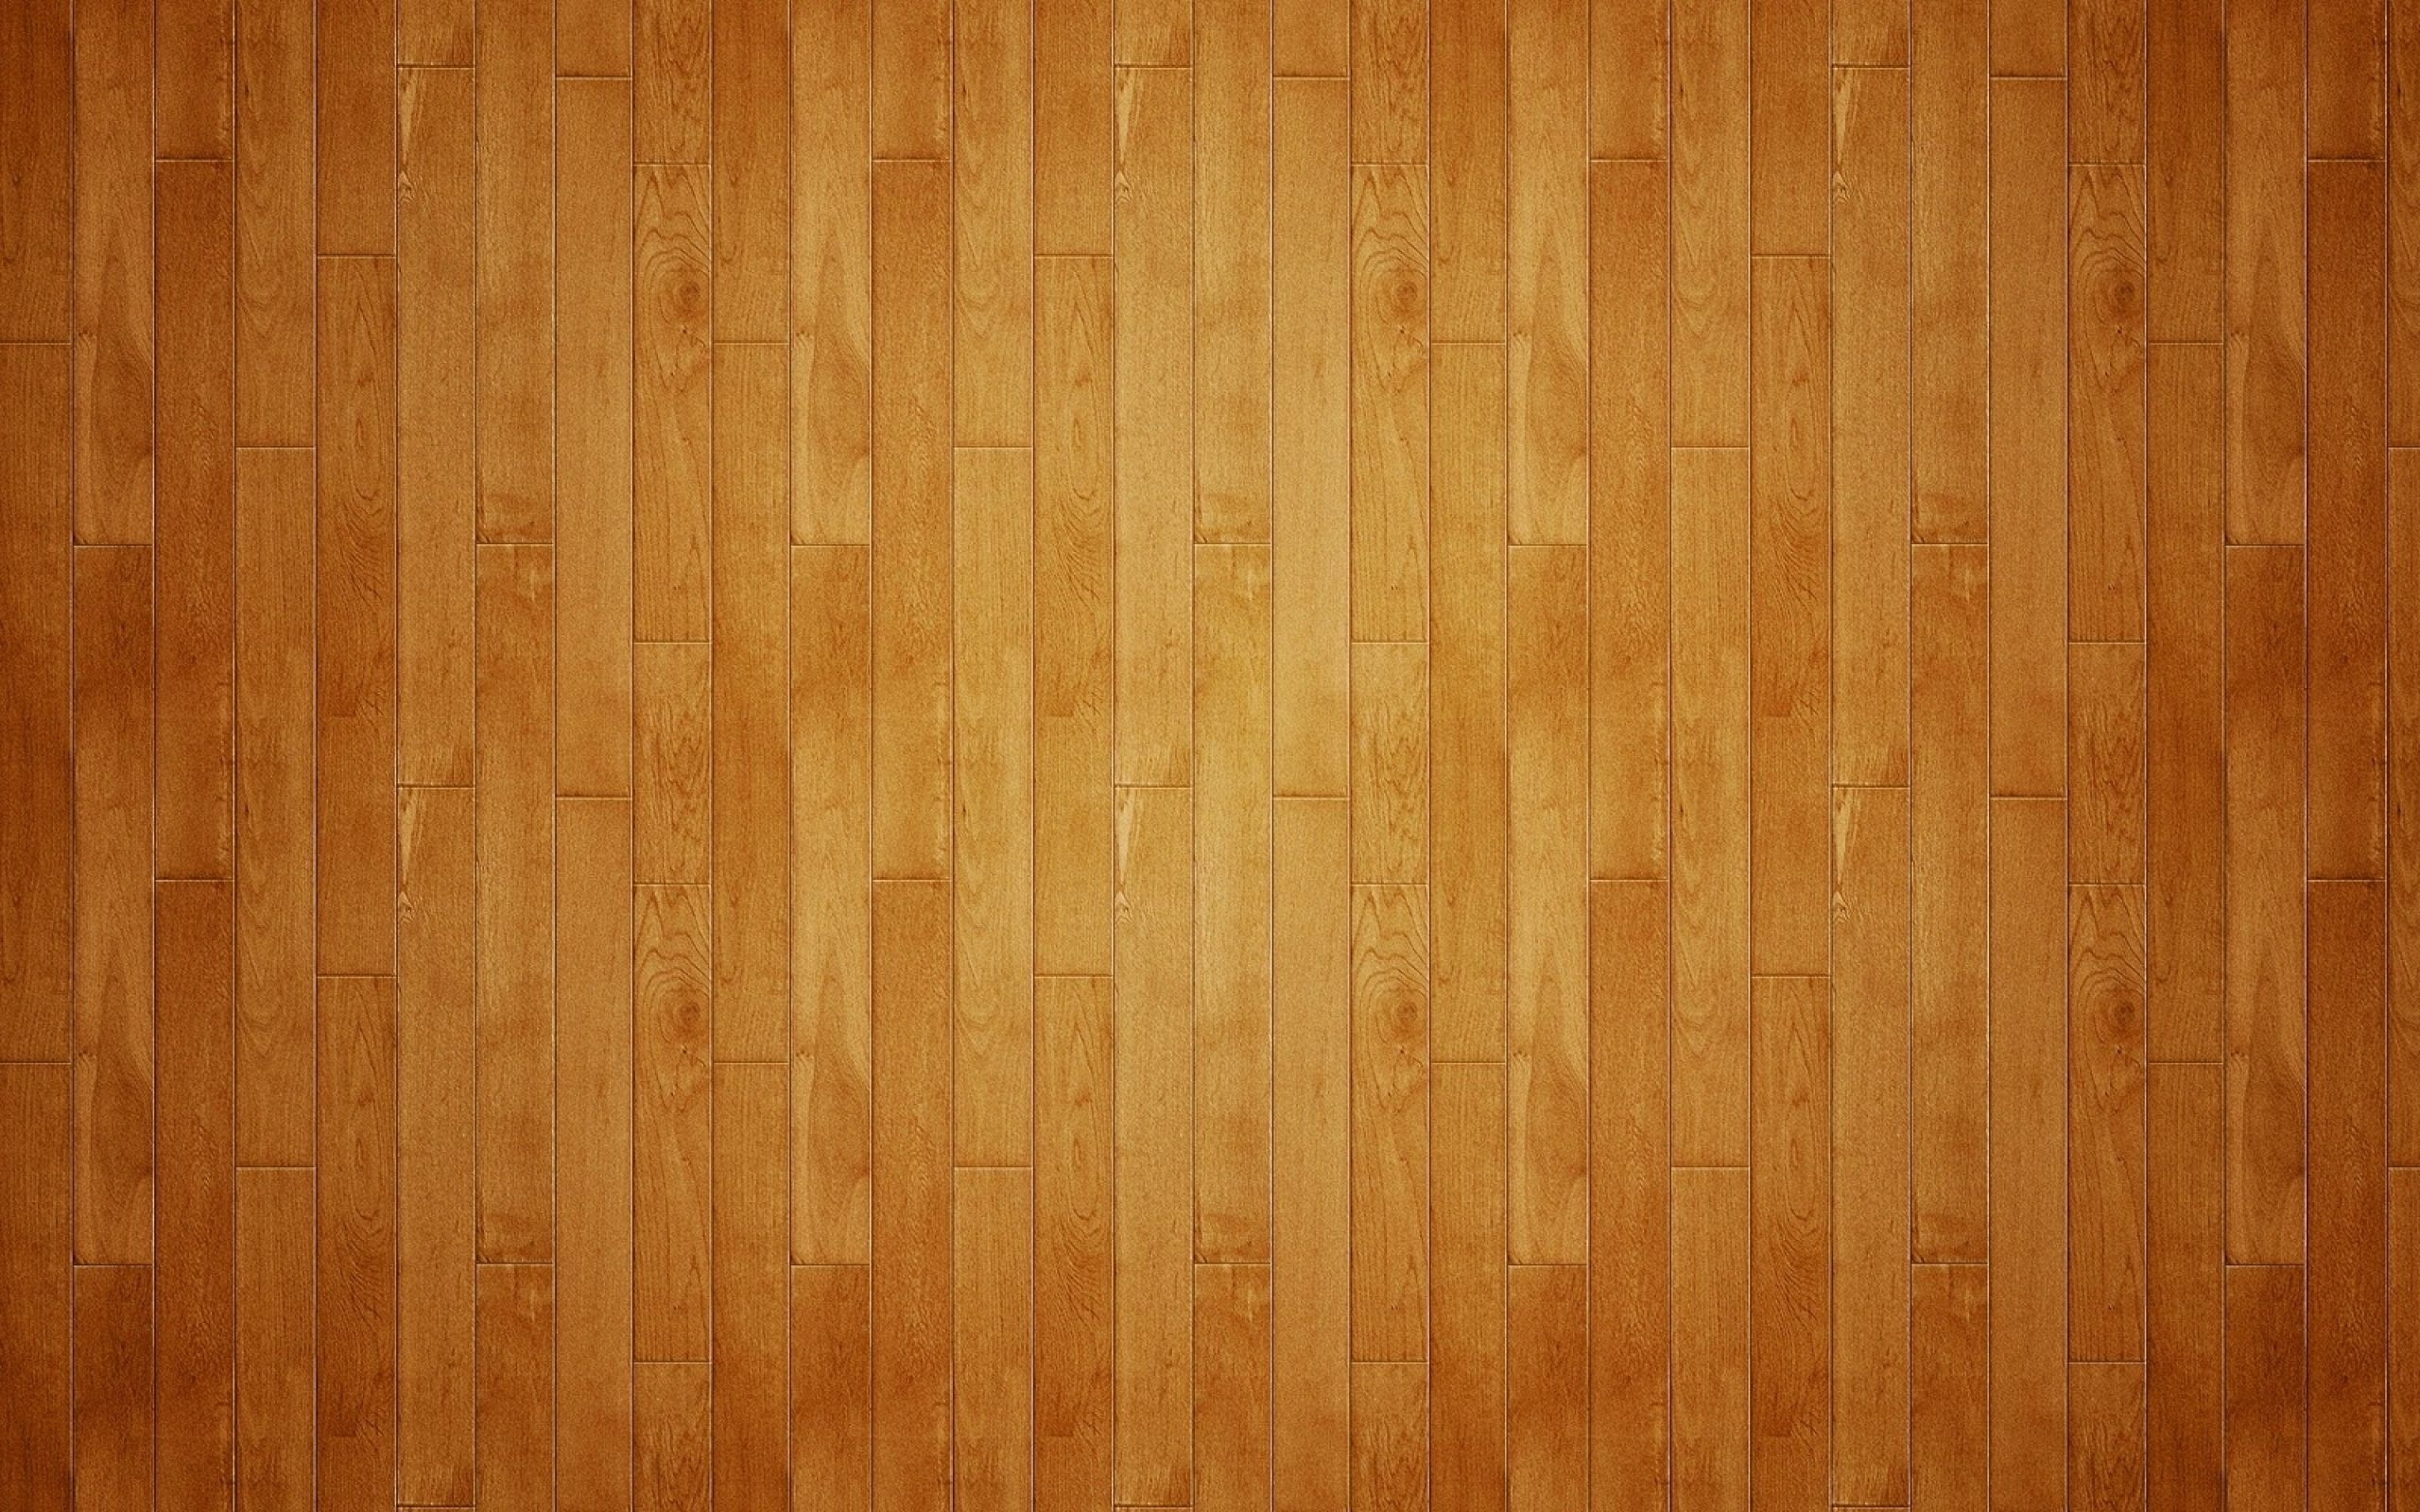 download background patterns wood - backgrounds wood texture